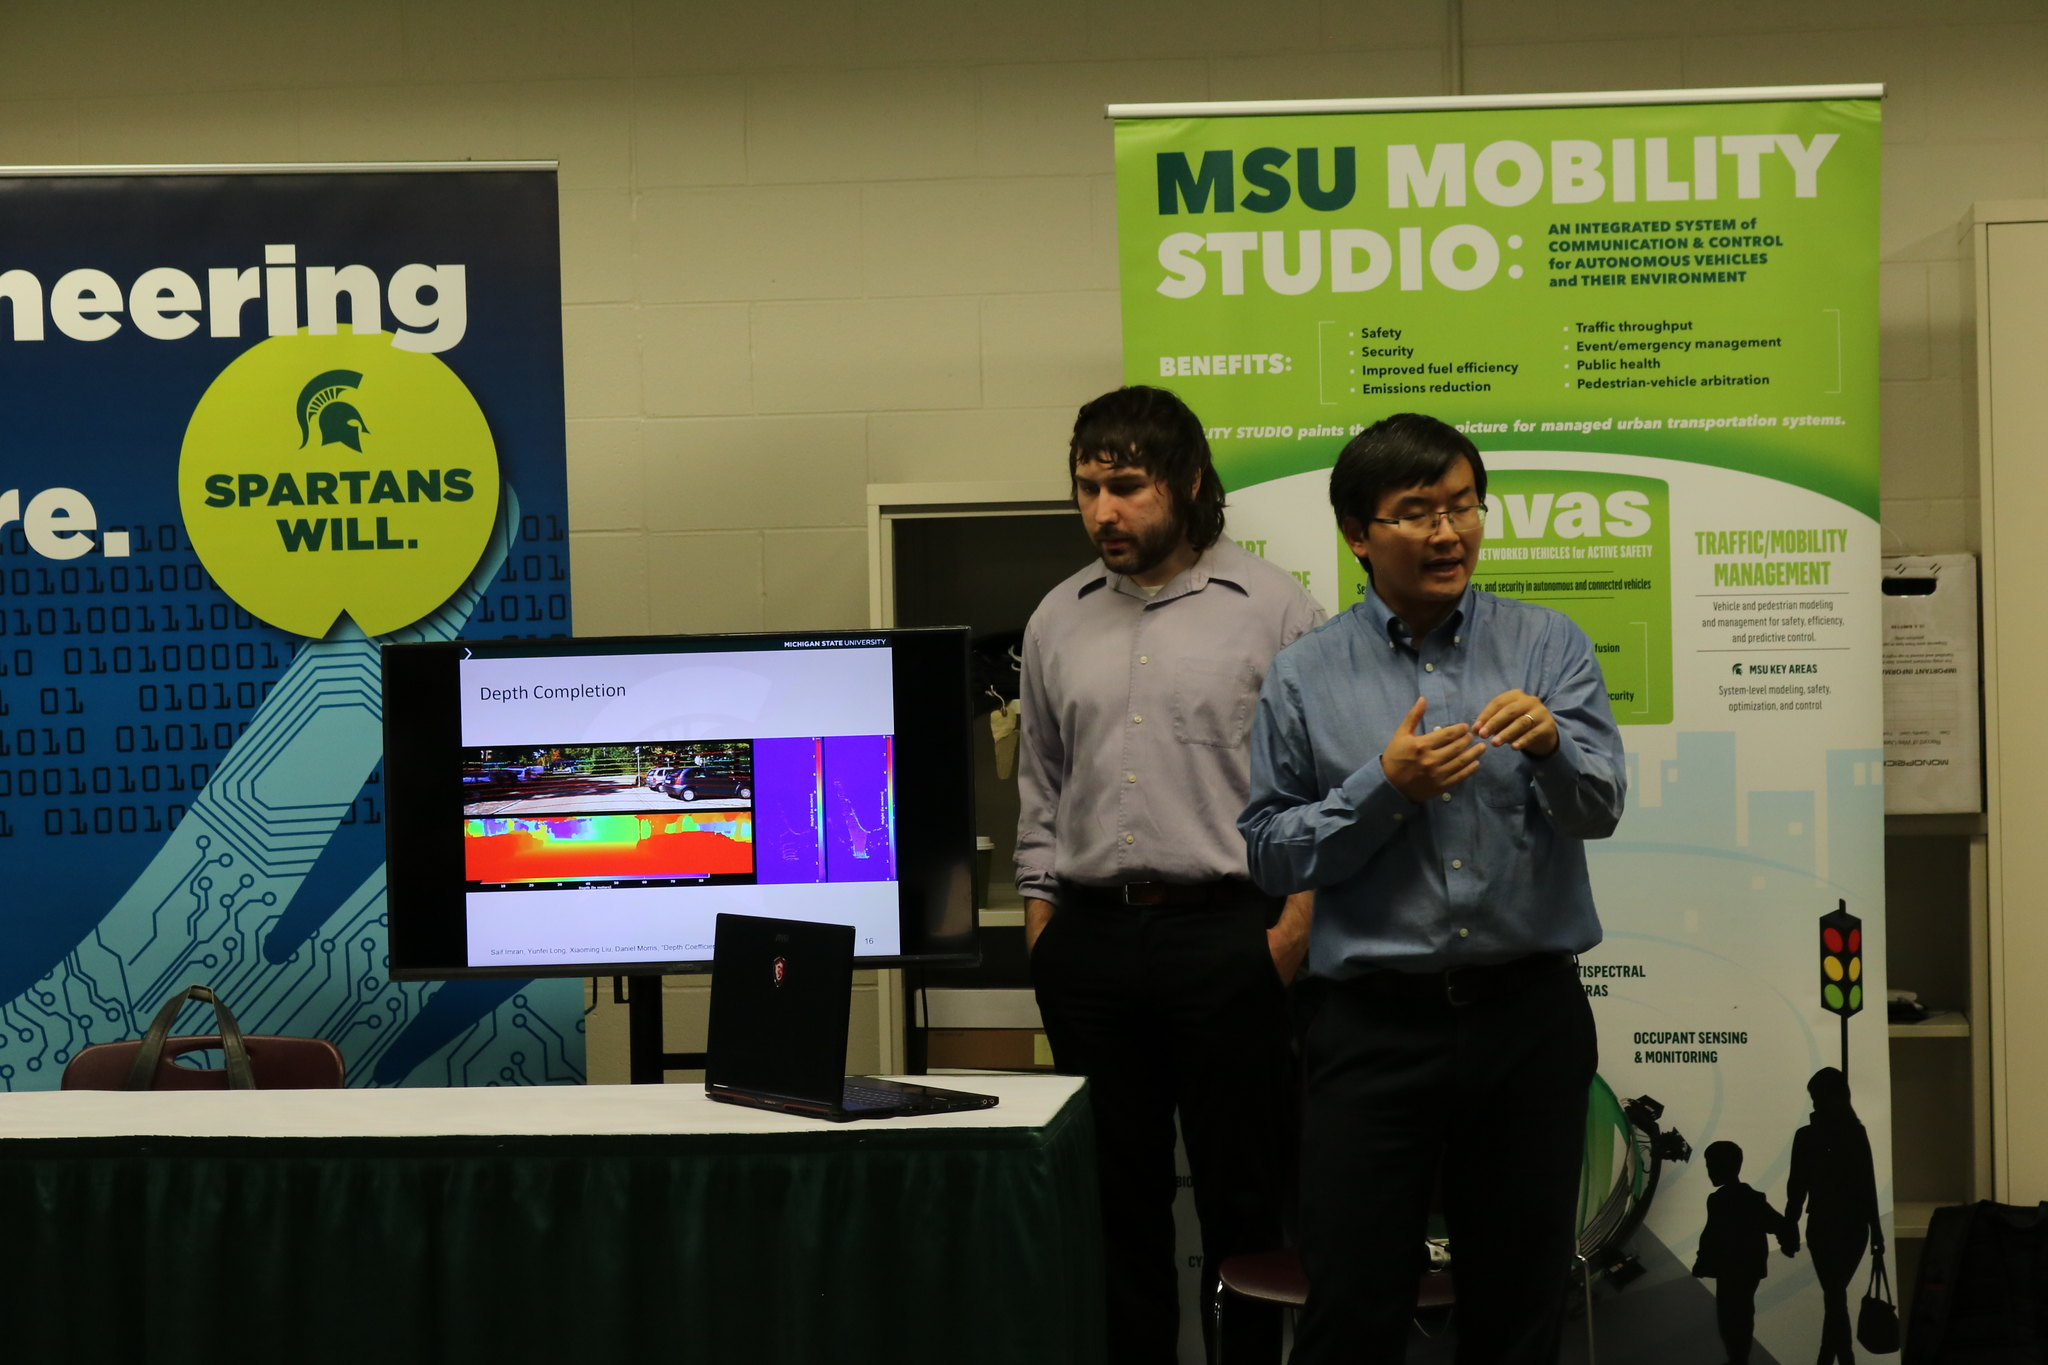 Xiaoming Liu (right) is among the Spartan Engineers who help showcase research during special events.